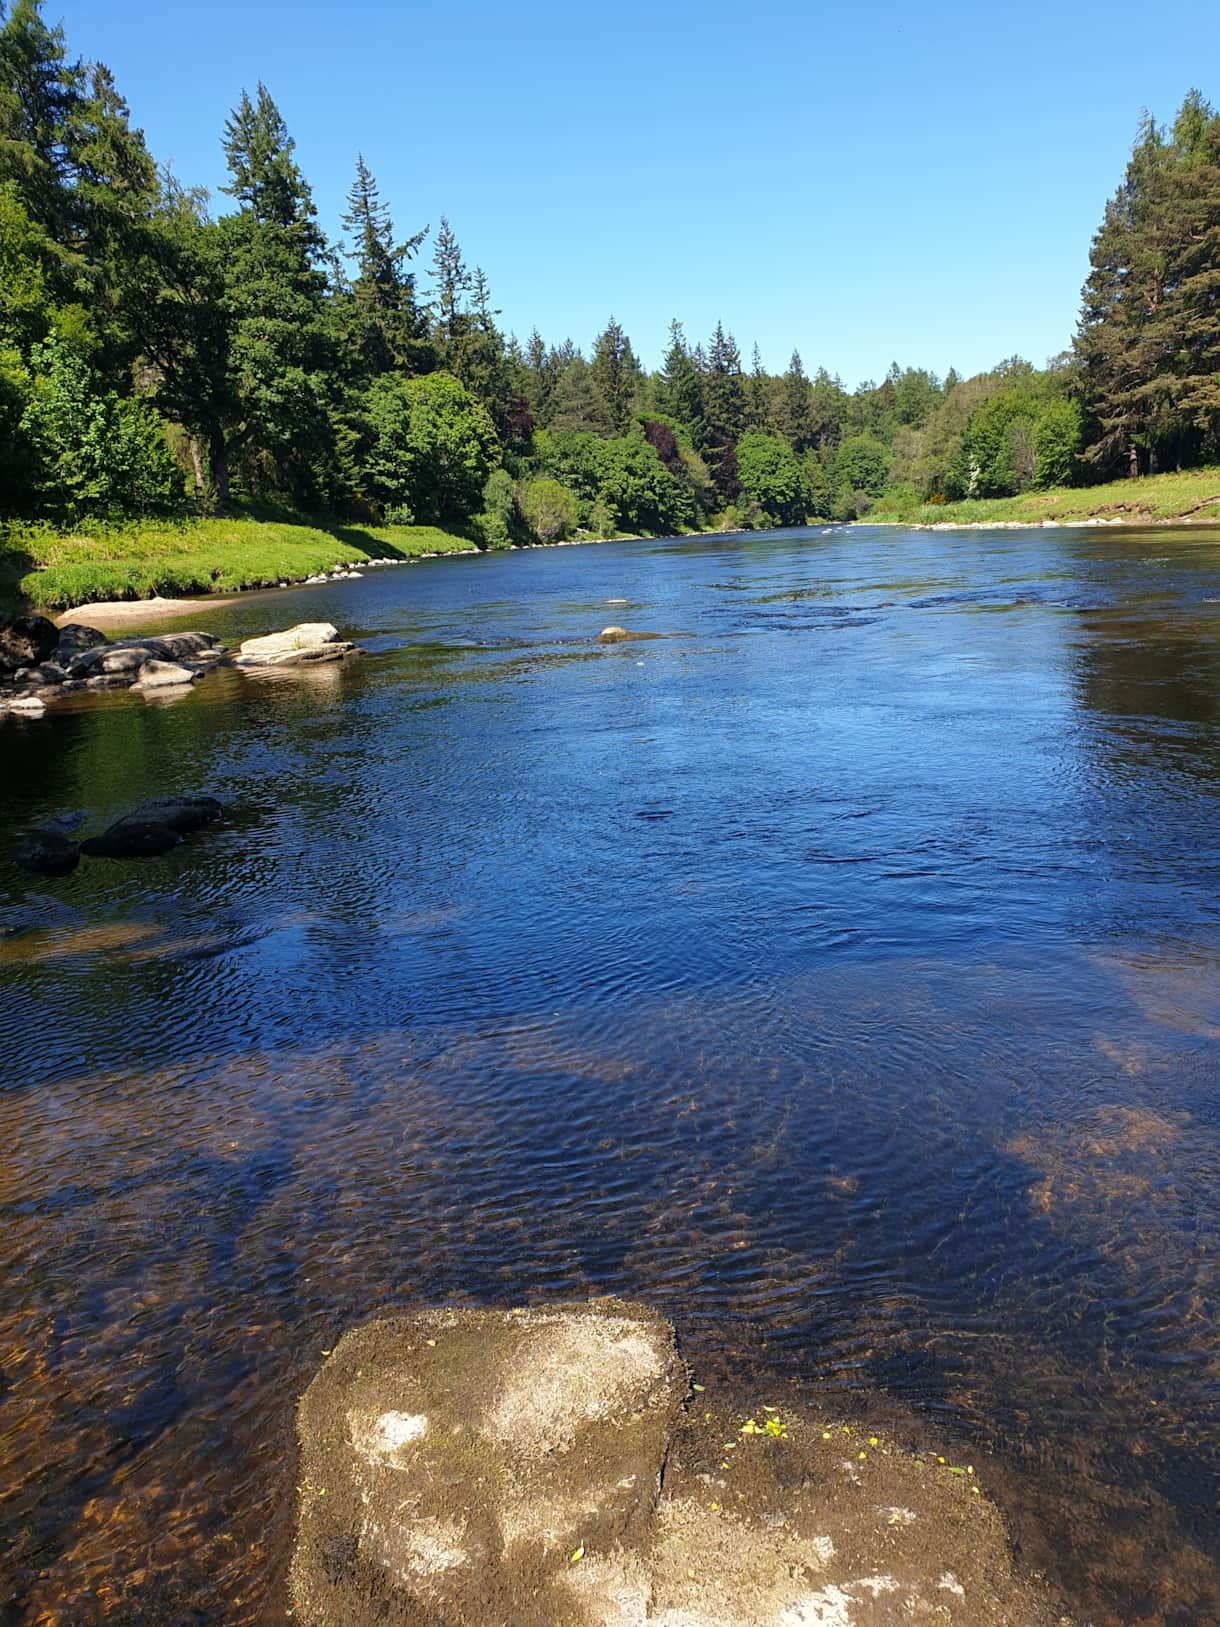 The River Spey is 10 minutes walk from the house